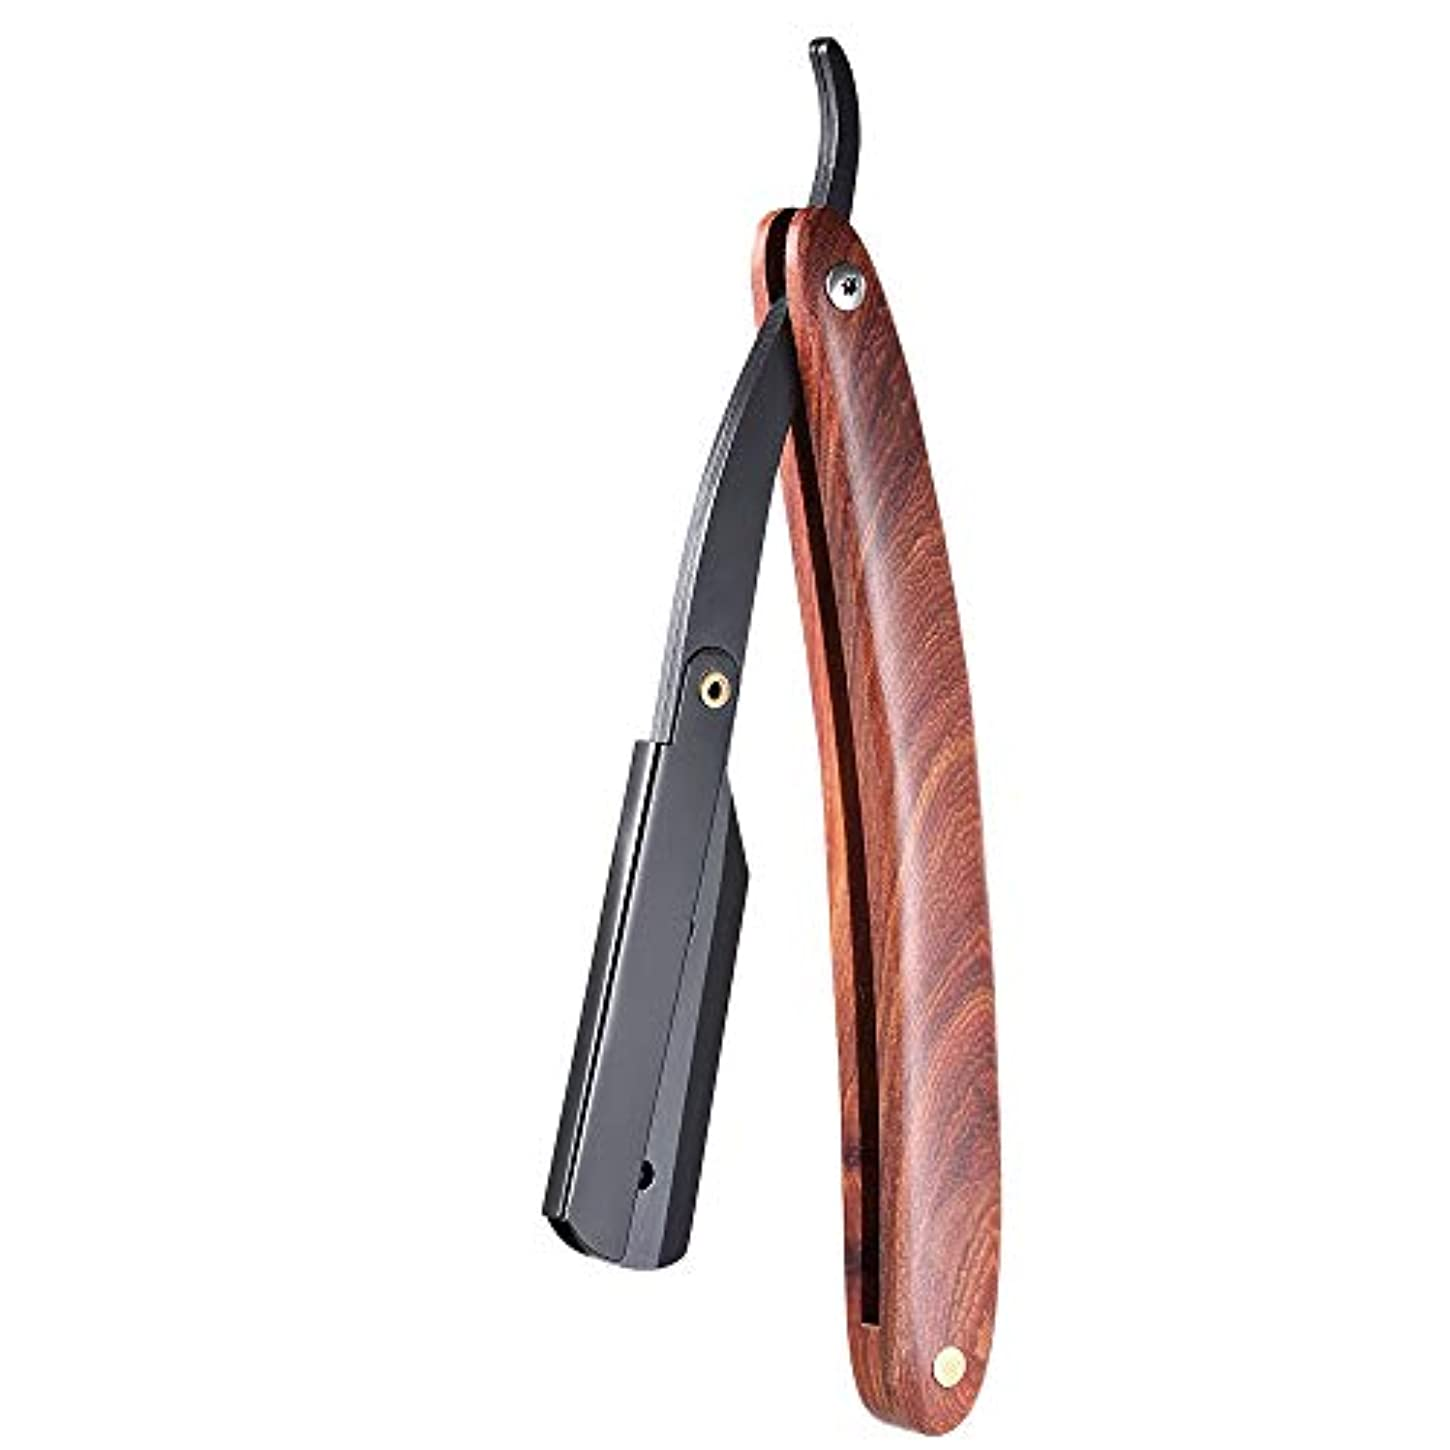 年次うなずくご覧くださいMen Shaving Straight Edge Razor Stainless Steel Manual Razor Wooden Handle Folding Shaving Knife Shave Beard Cutter...